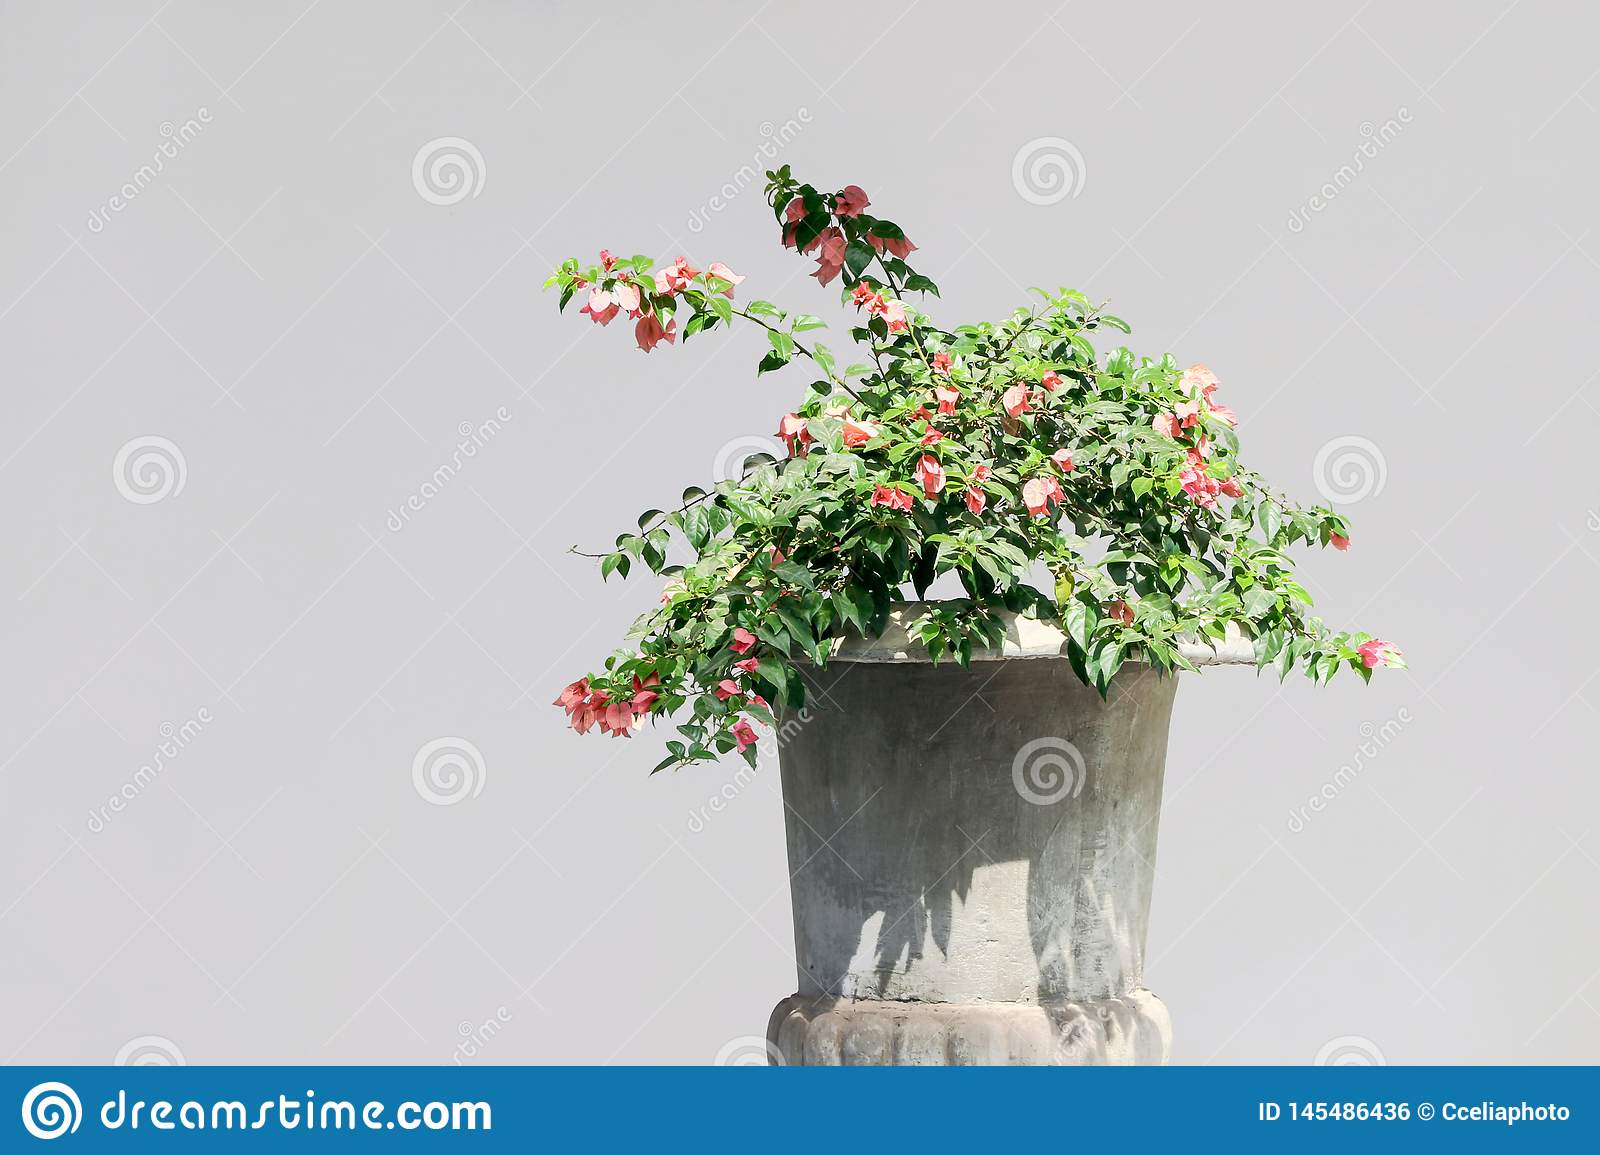 Blooming Paperflower Plant In Pot Stock Photo Image Of Isolated